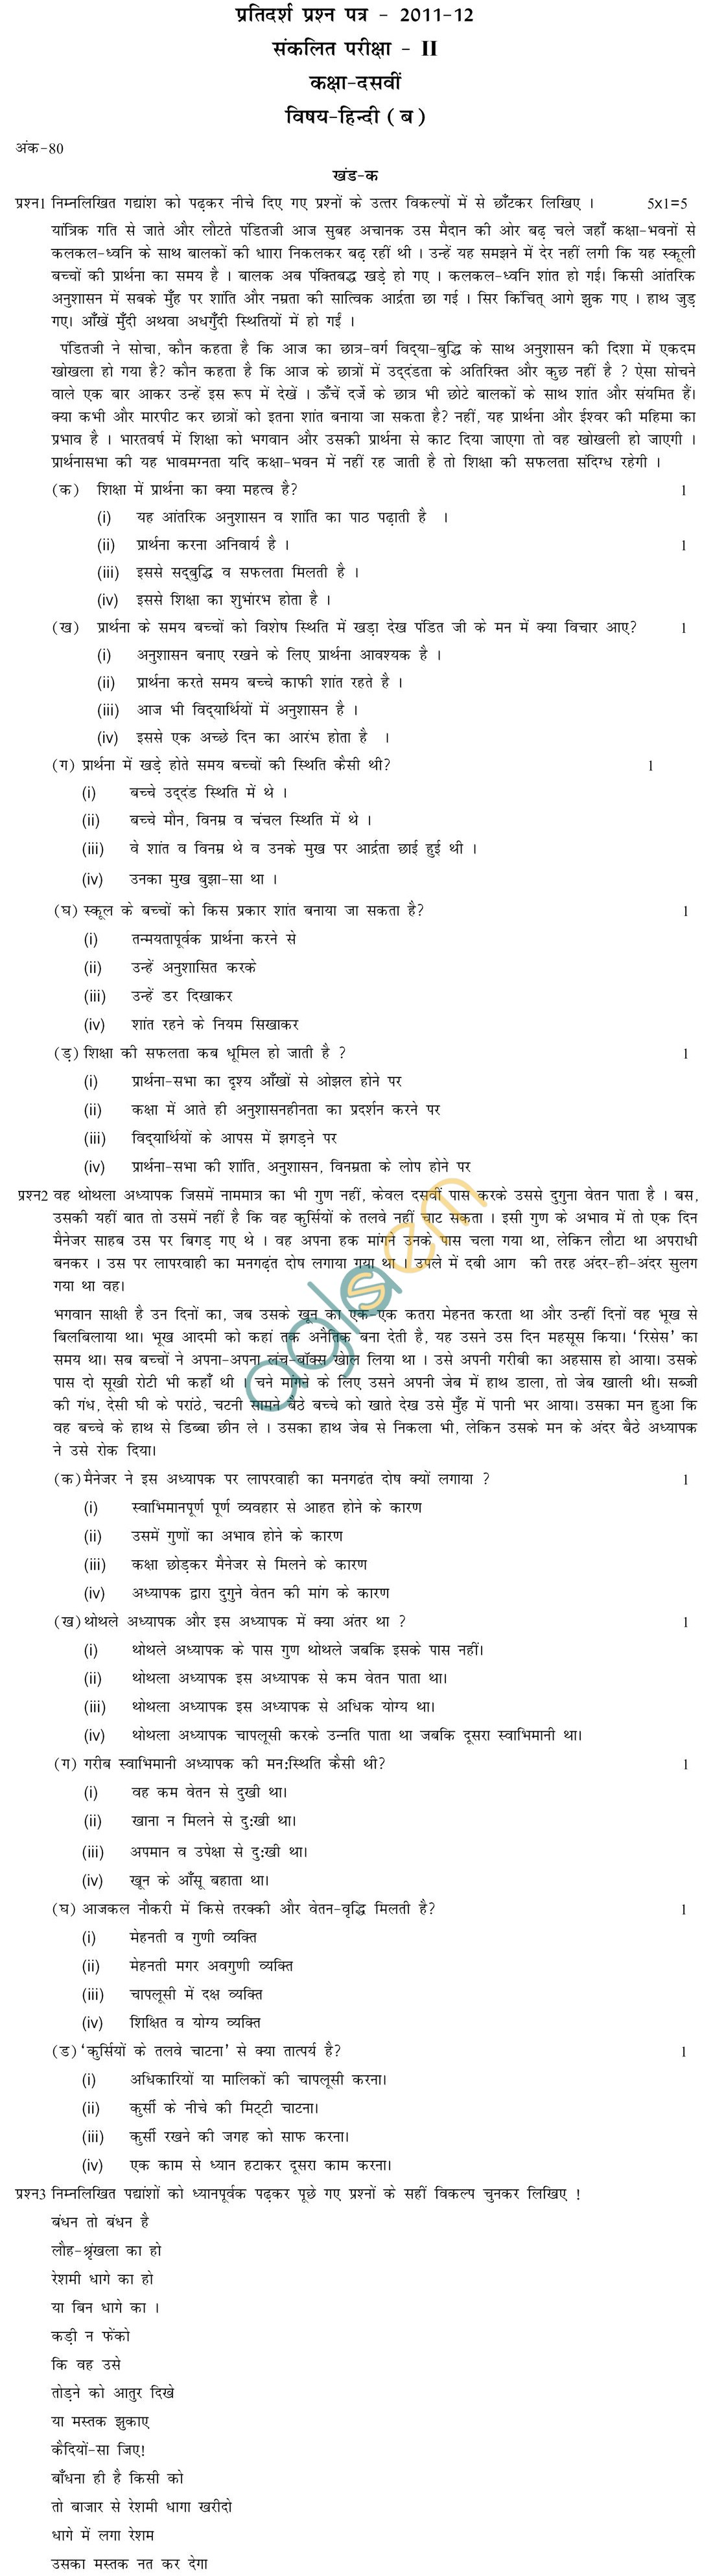 Maths Mcq Questions For Class 10 Cbse Sa2